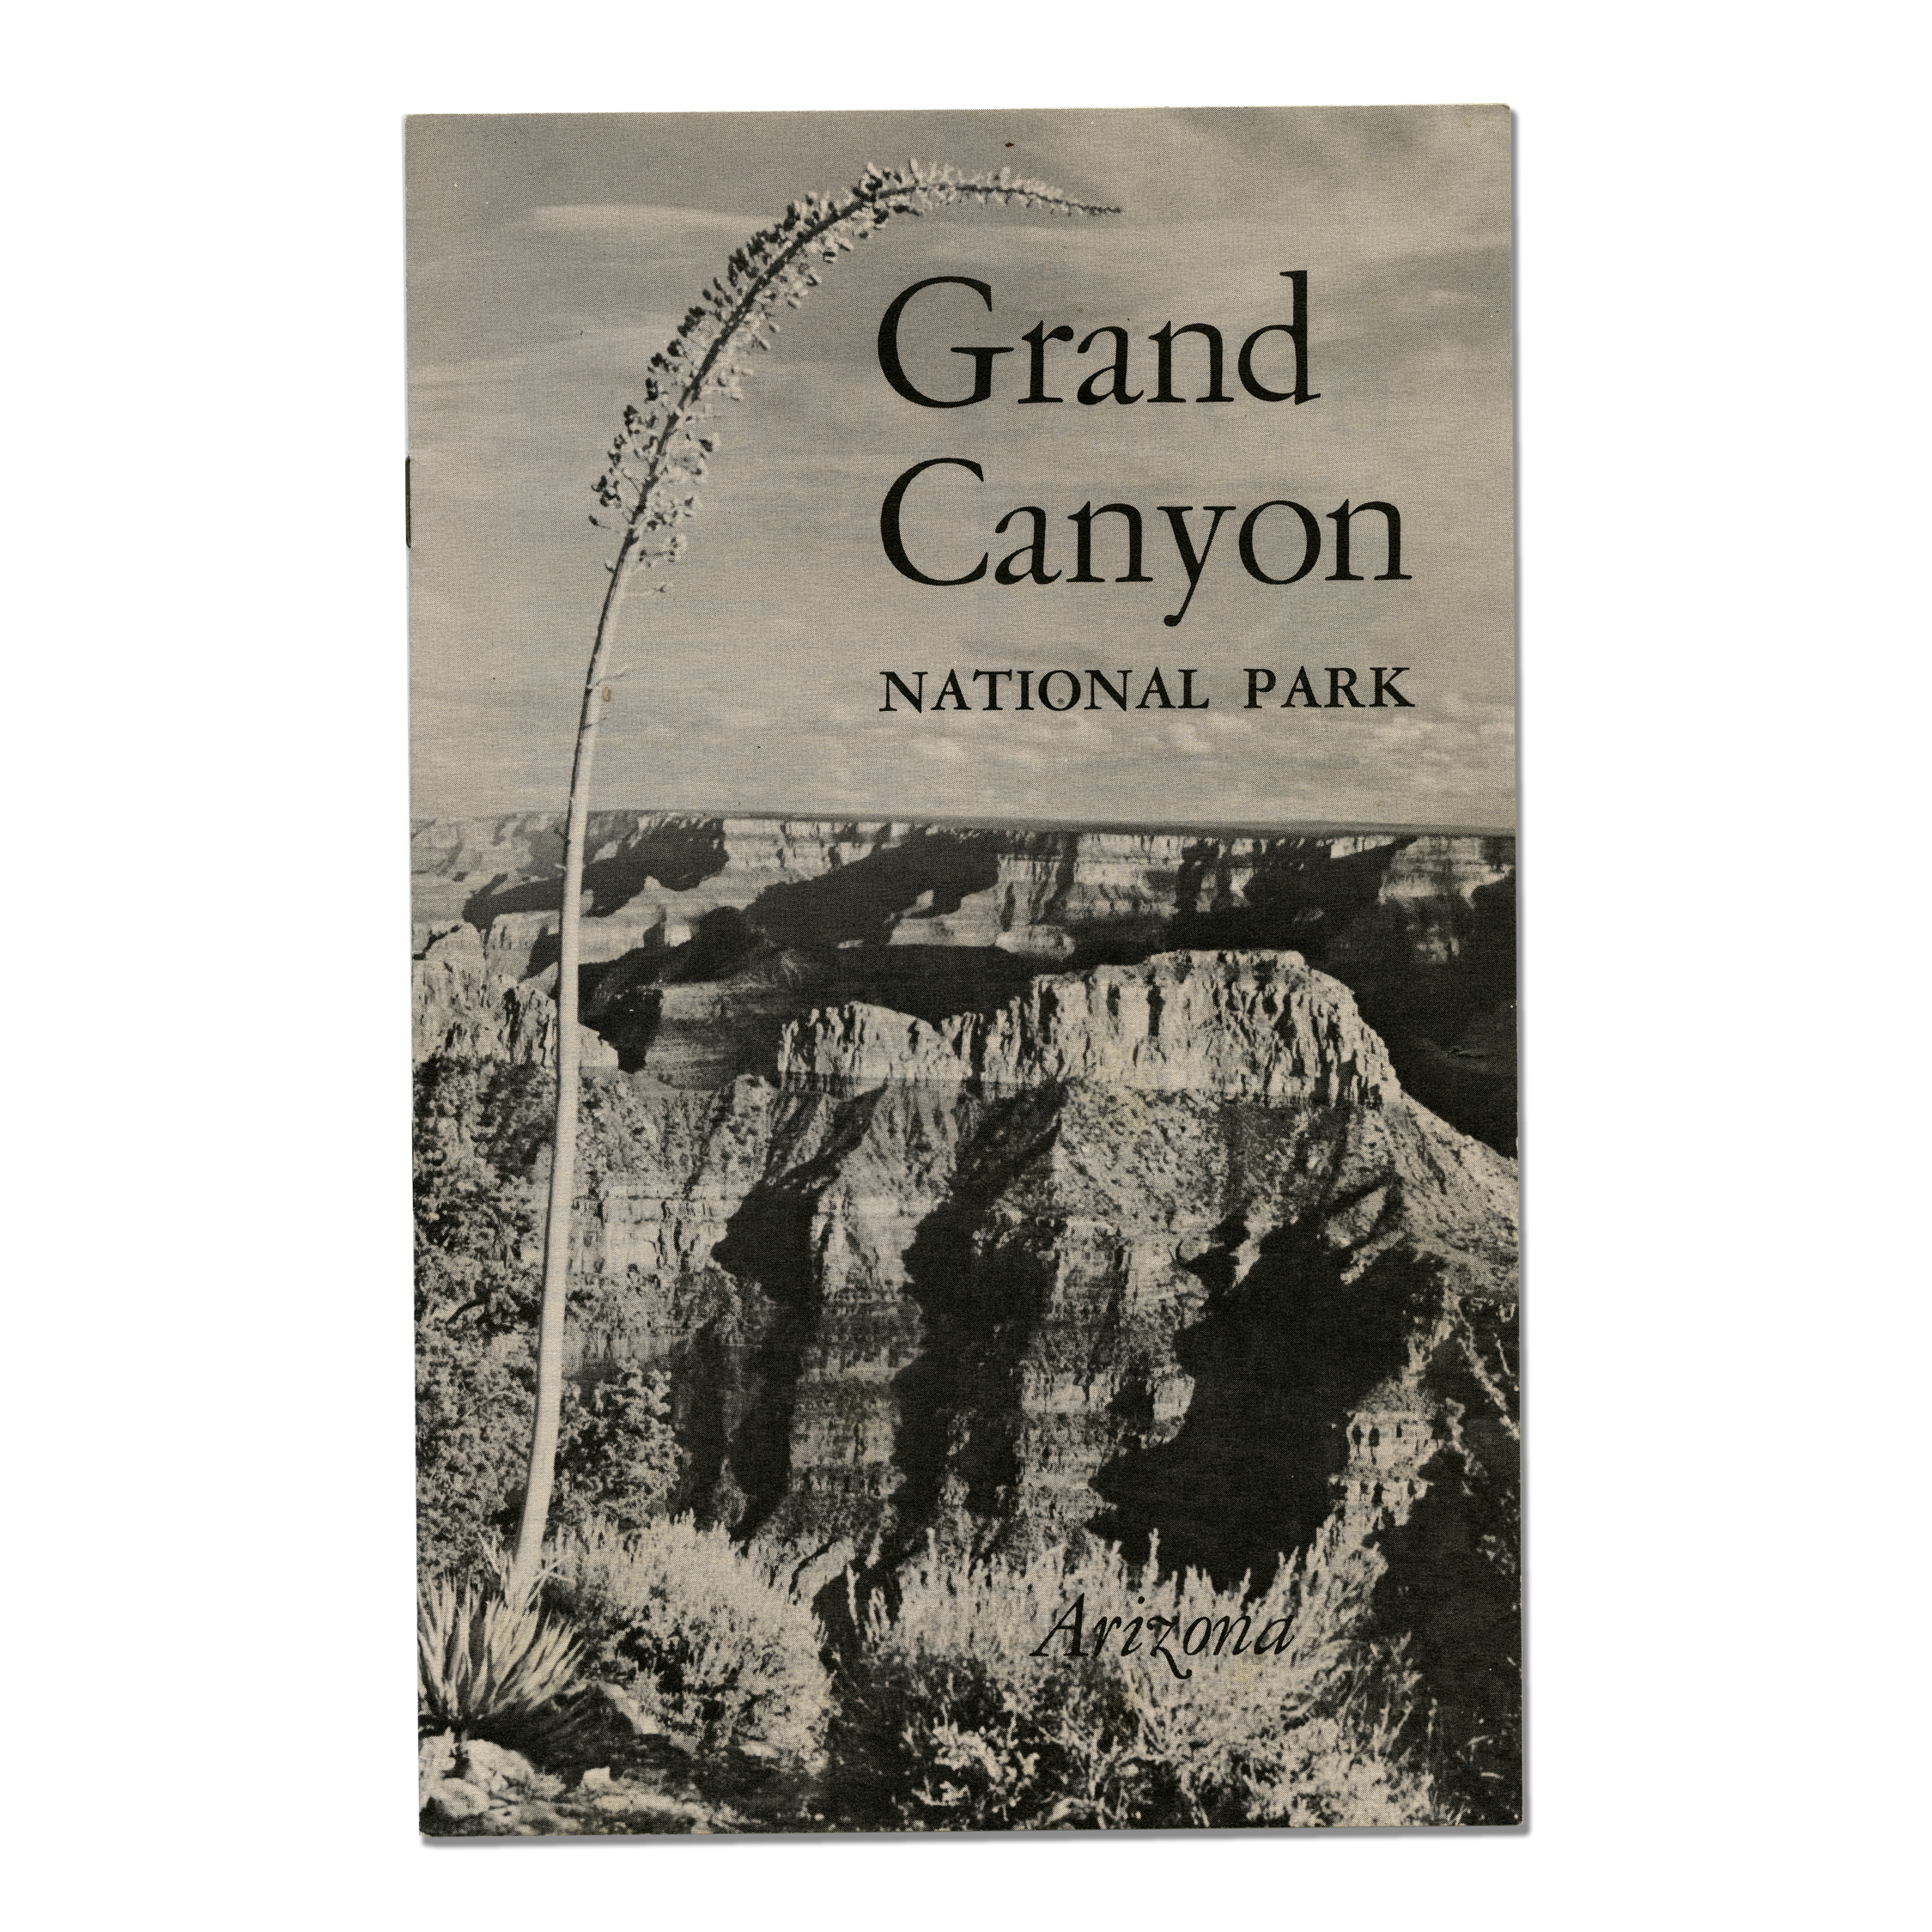 1956_grand_canyon_national_park_brochure.jpg